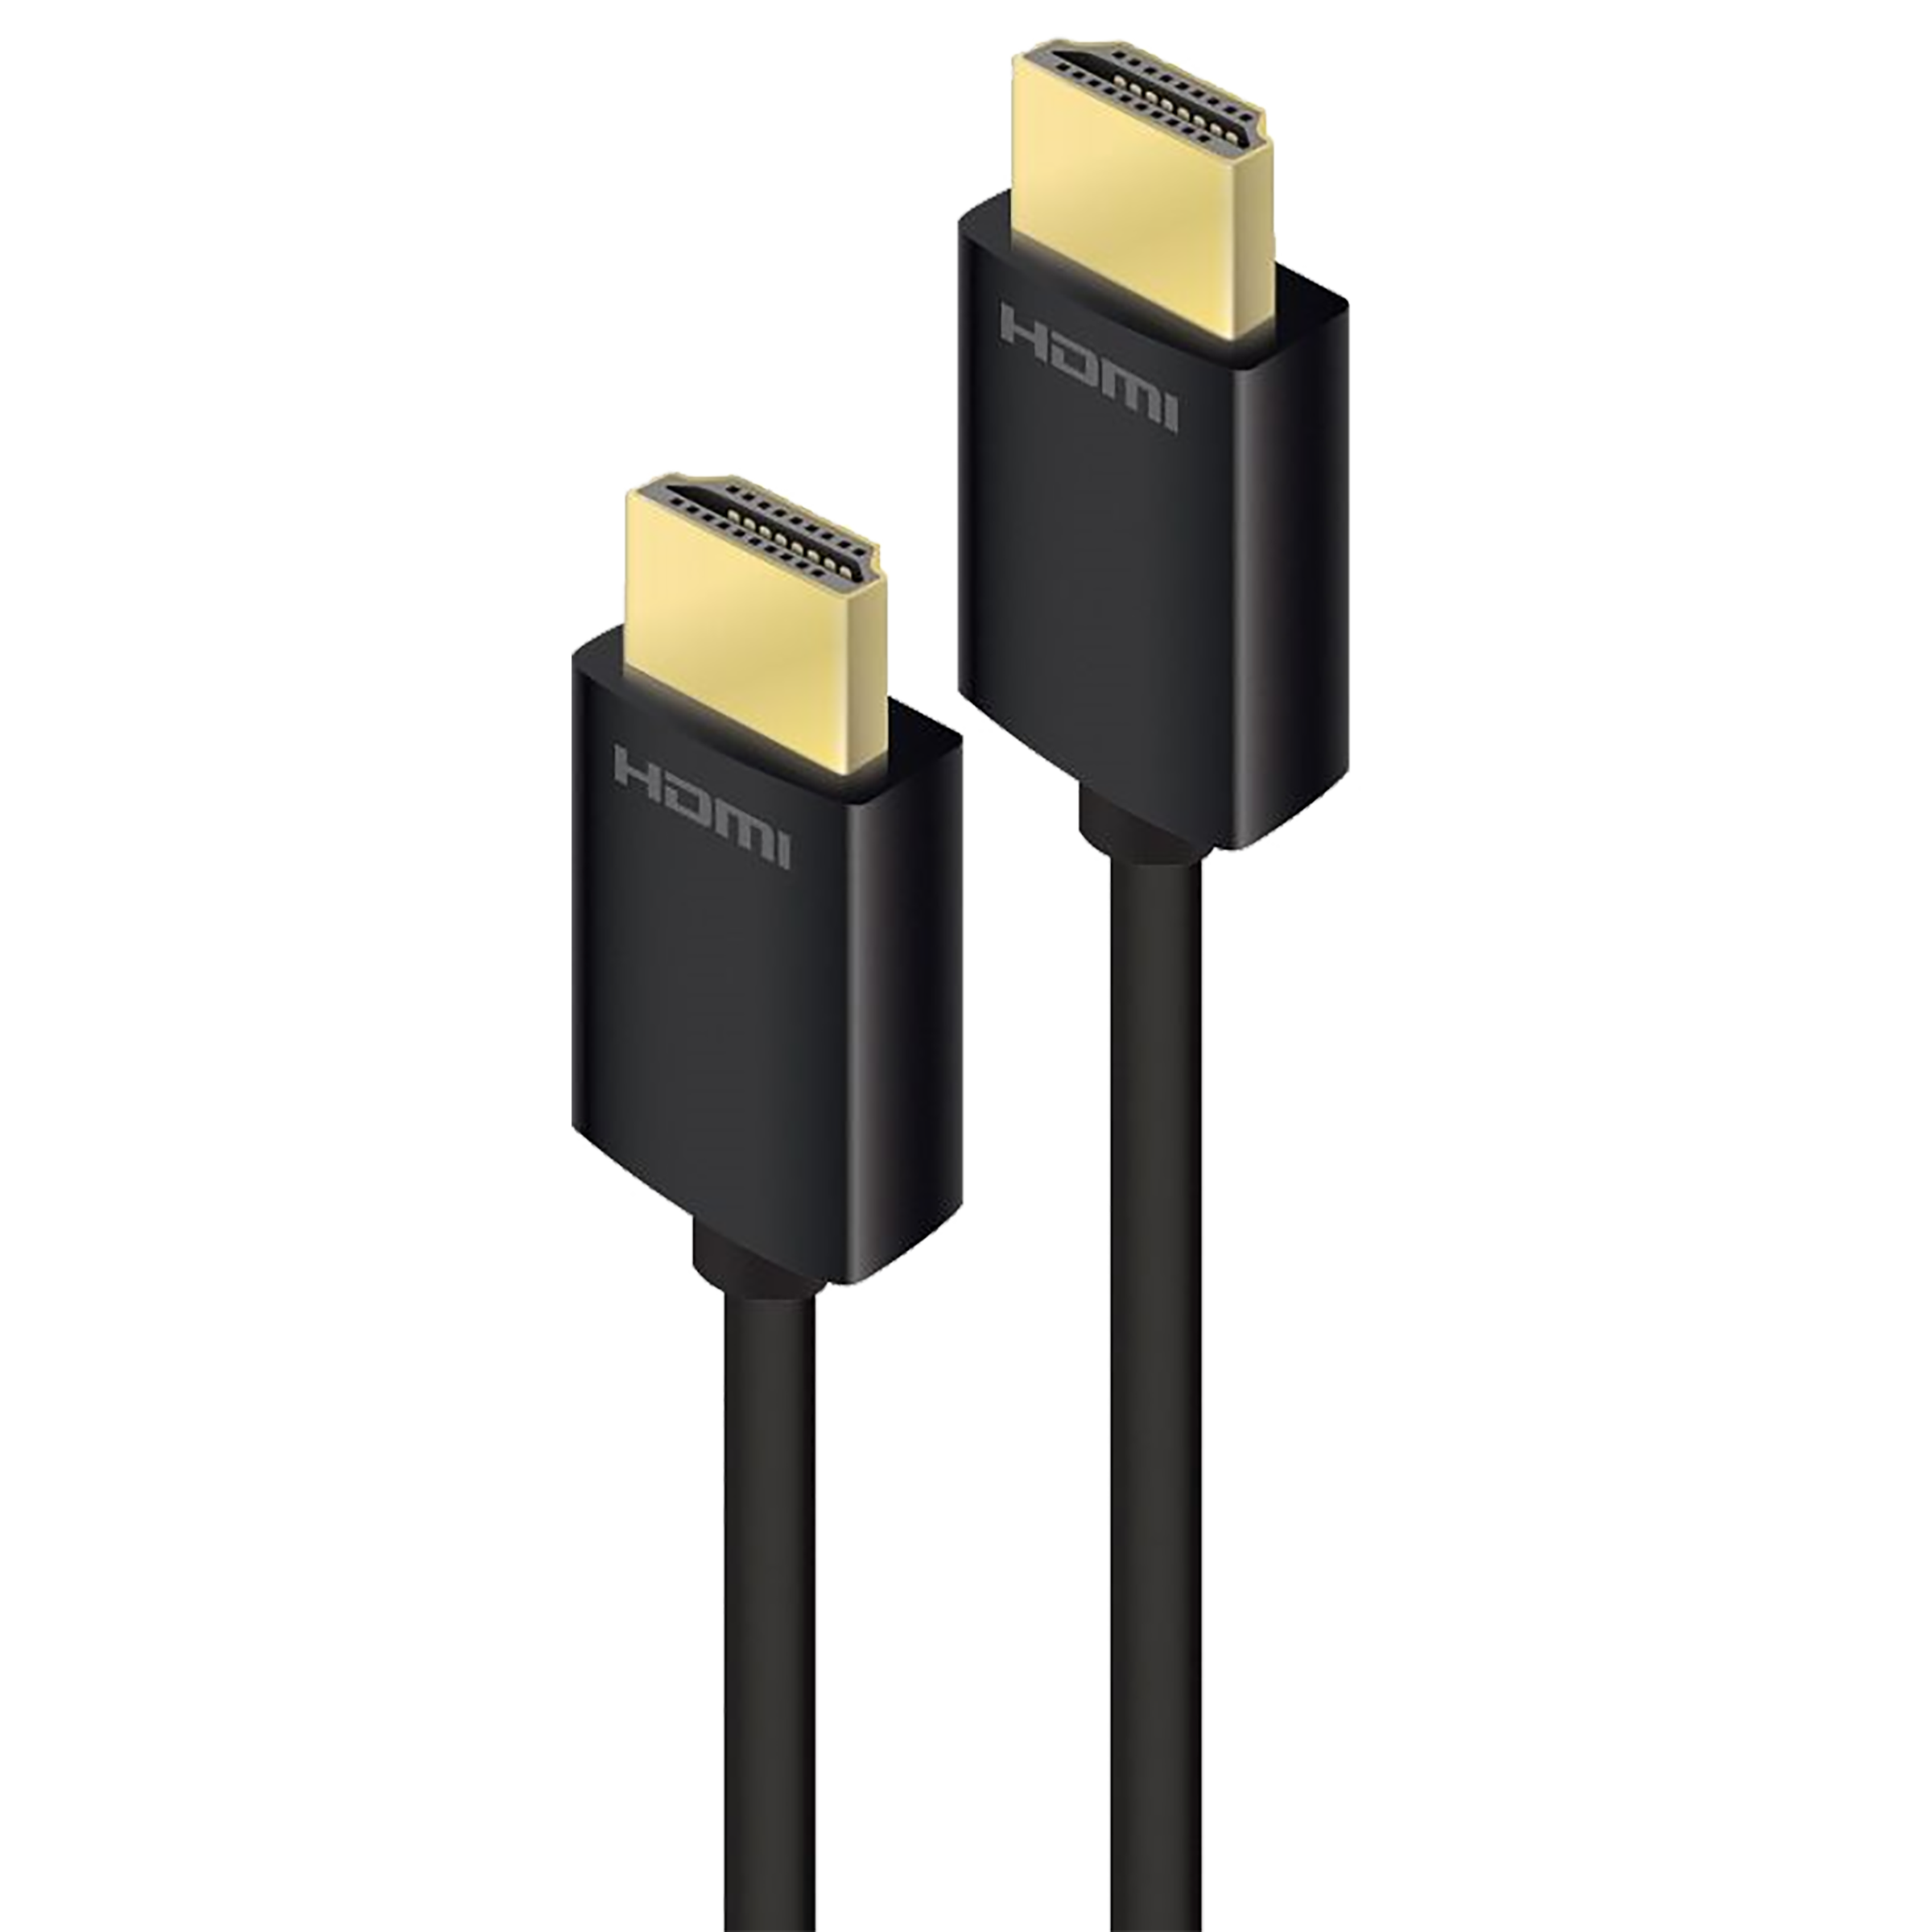 Alogic Carbon Series 2 Meter HDMI (Type-A) to HDMI (Type-A) Audio & Video HDMI Cable (Ethernet Support, PHD-02-MM-V2, Black)_1